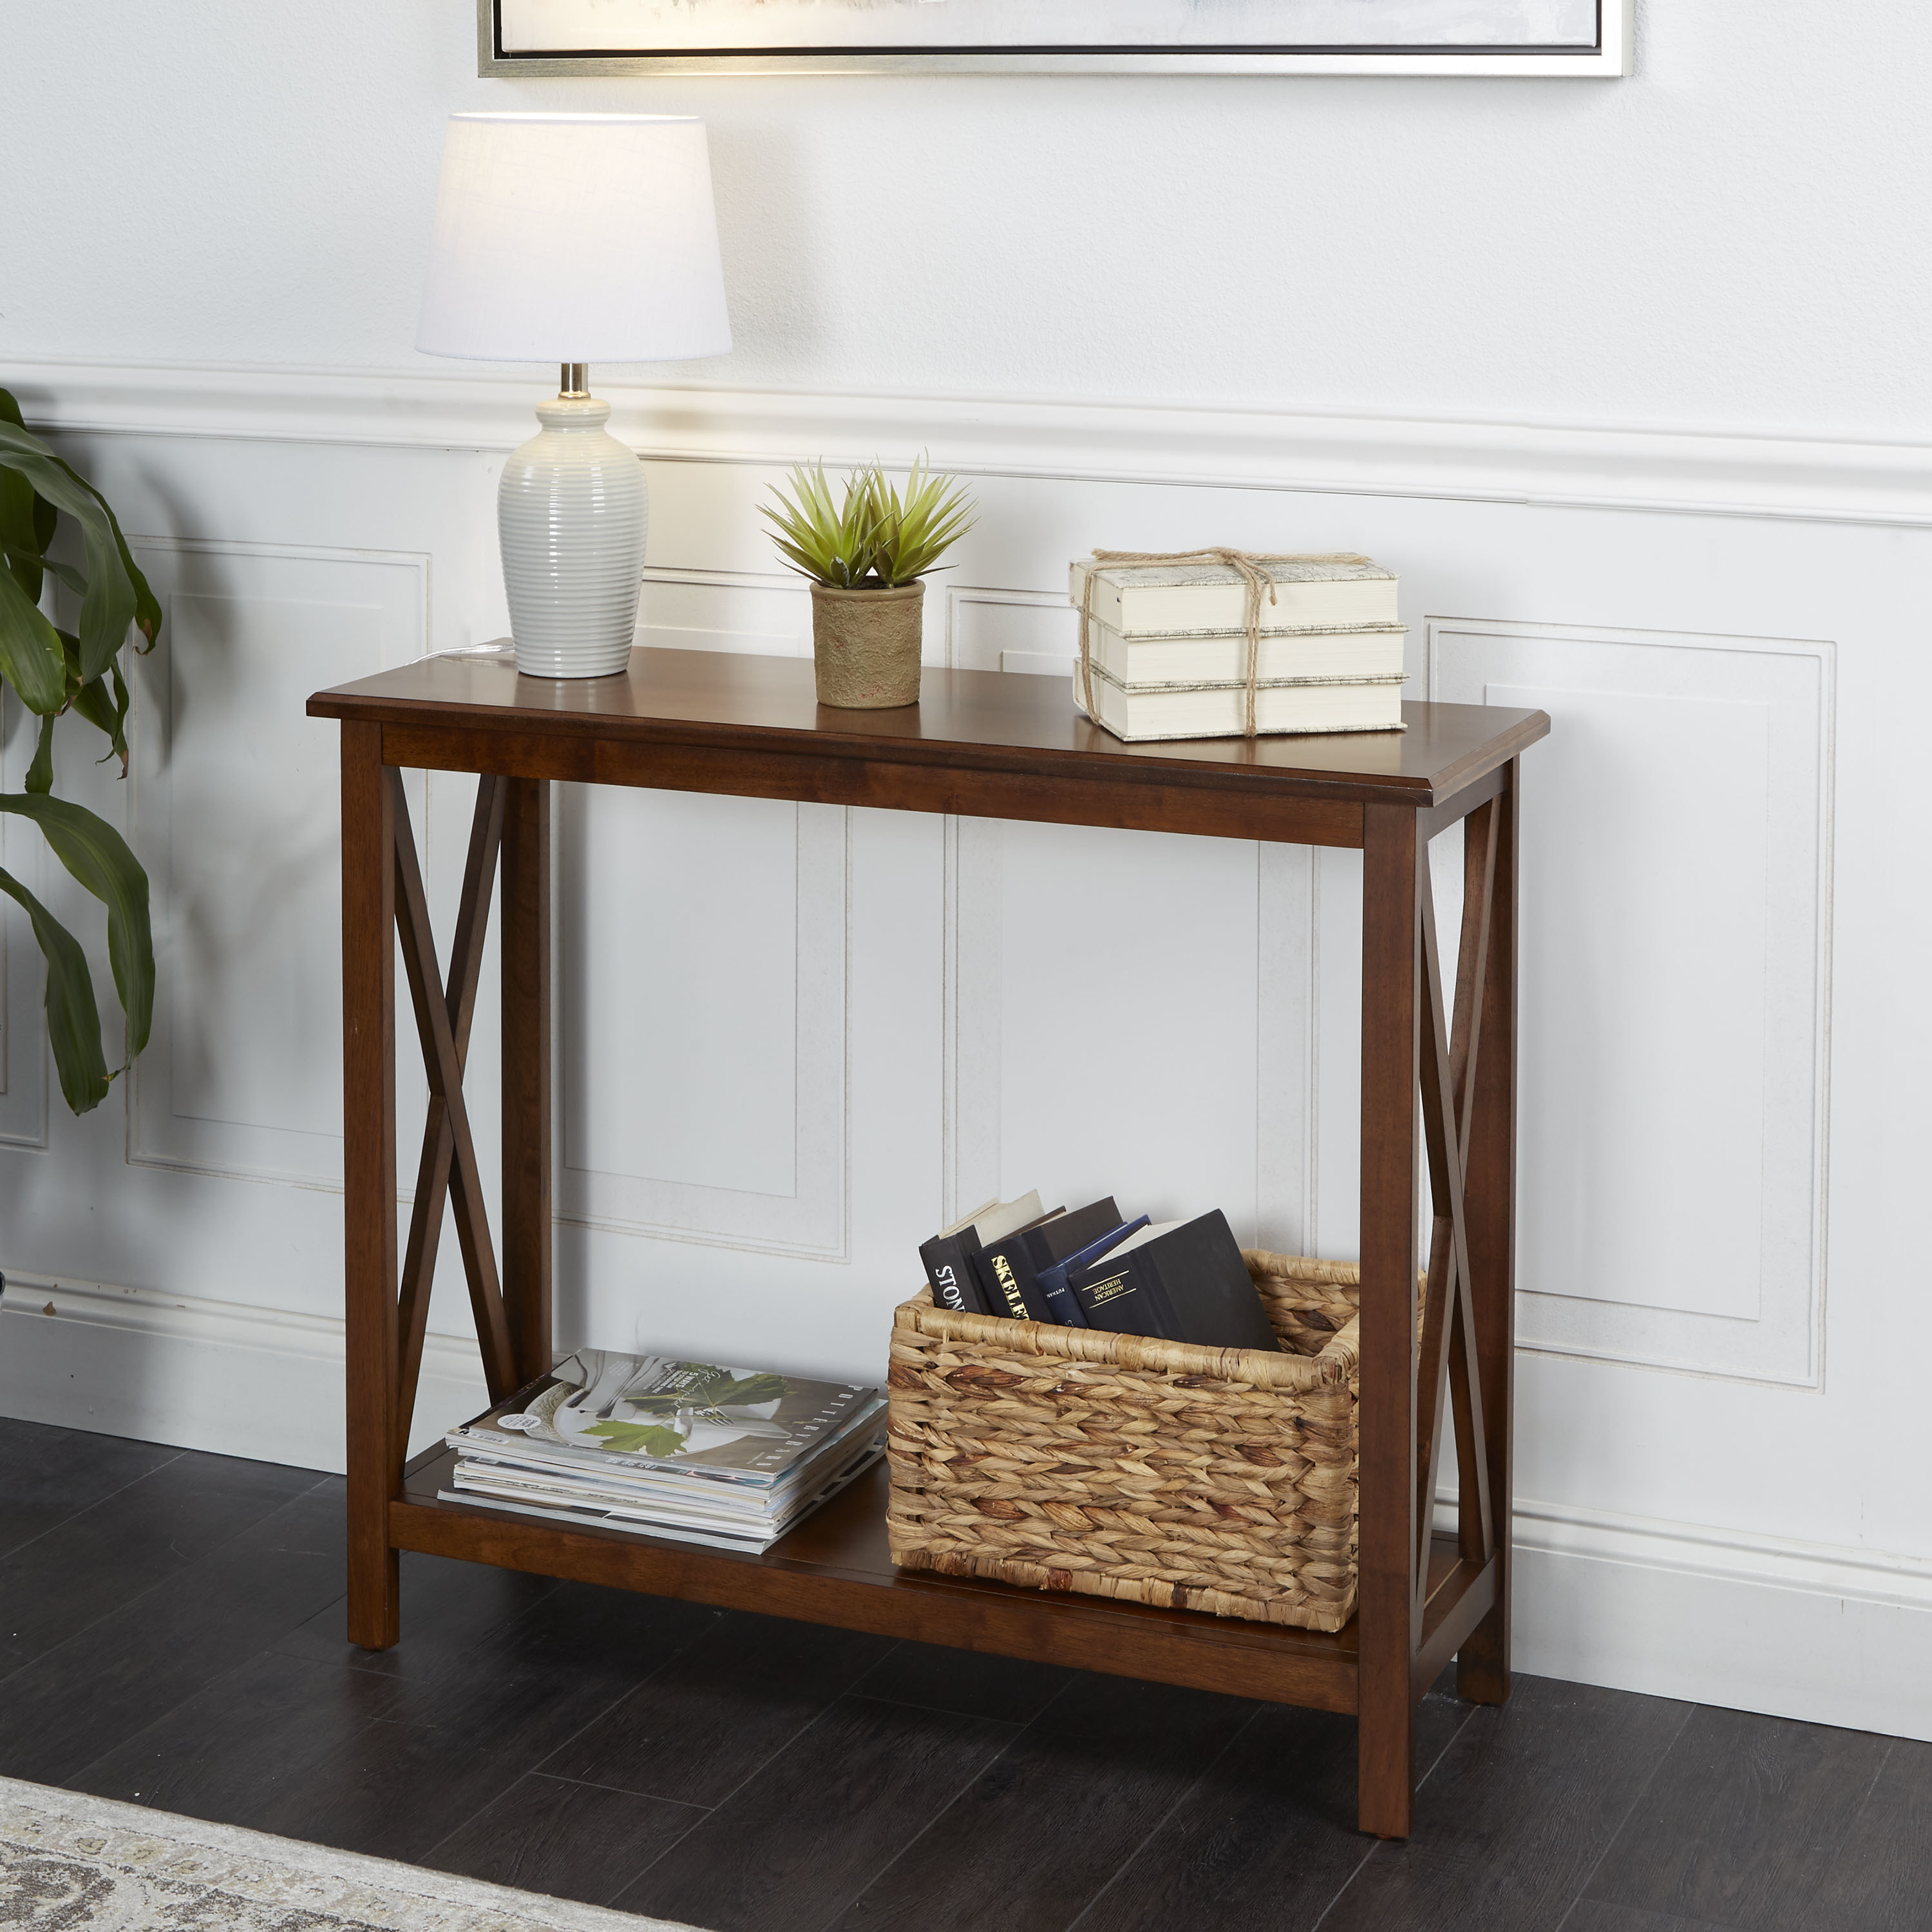 brown wooden console table with accessories on it